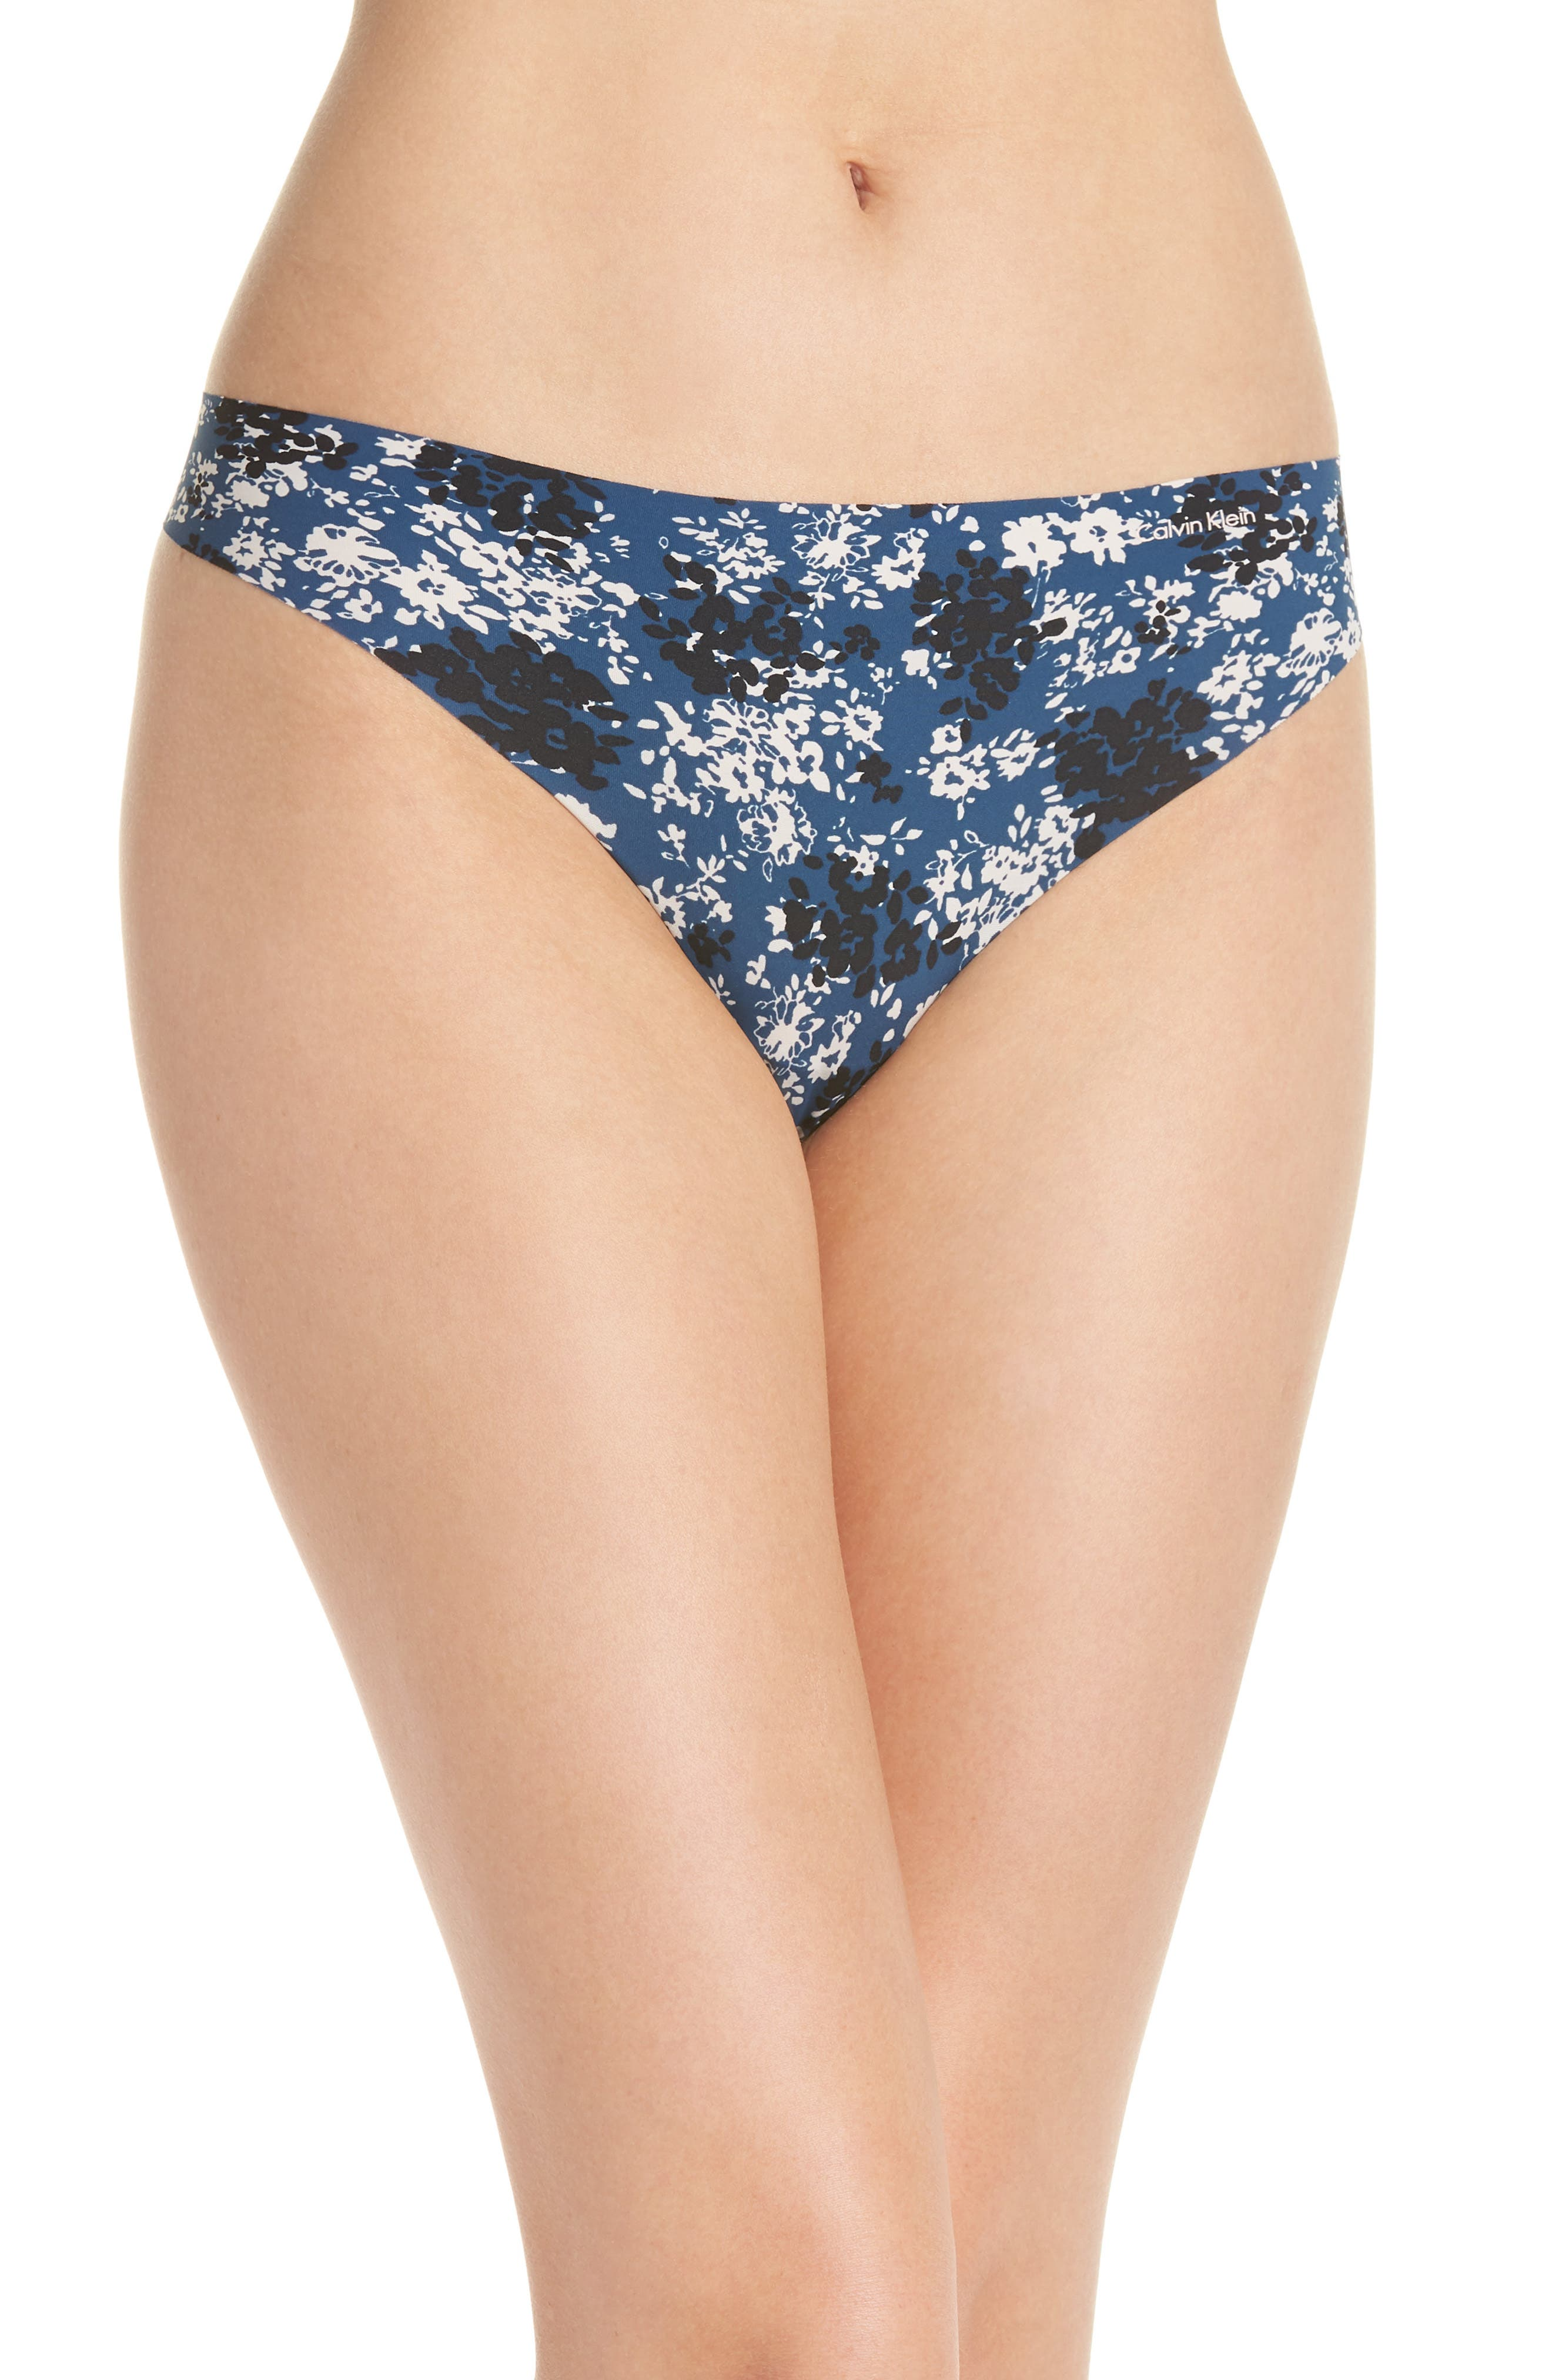 Invisibles Thong,                         Main,                         color, SIMPLE FLORAL/ LYRIA BLUE